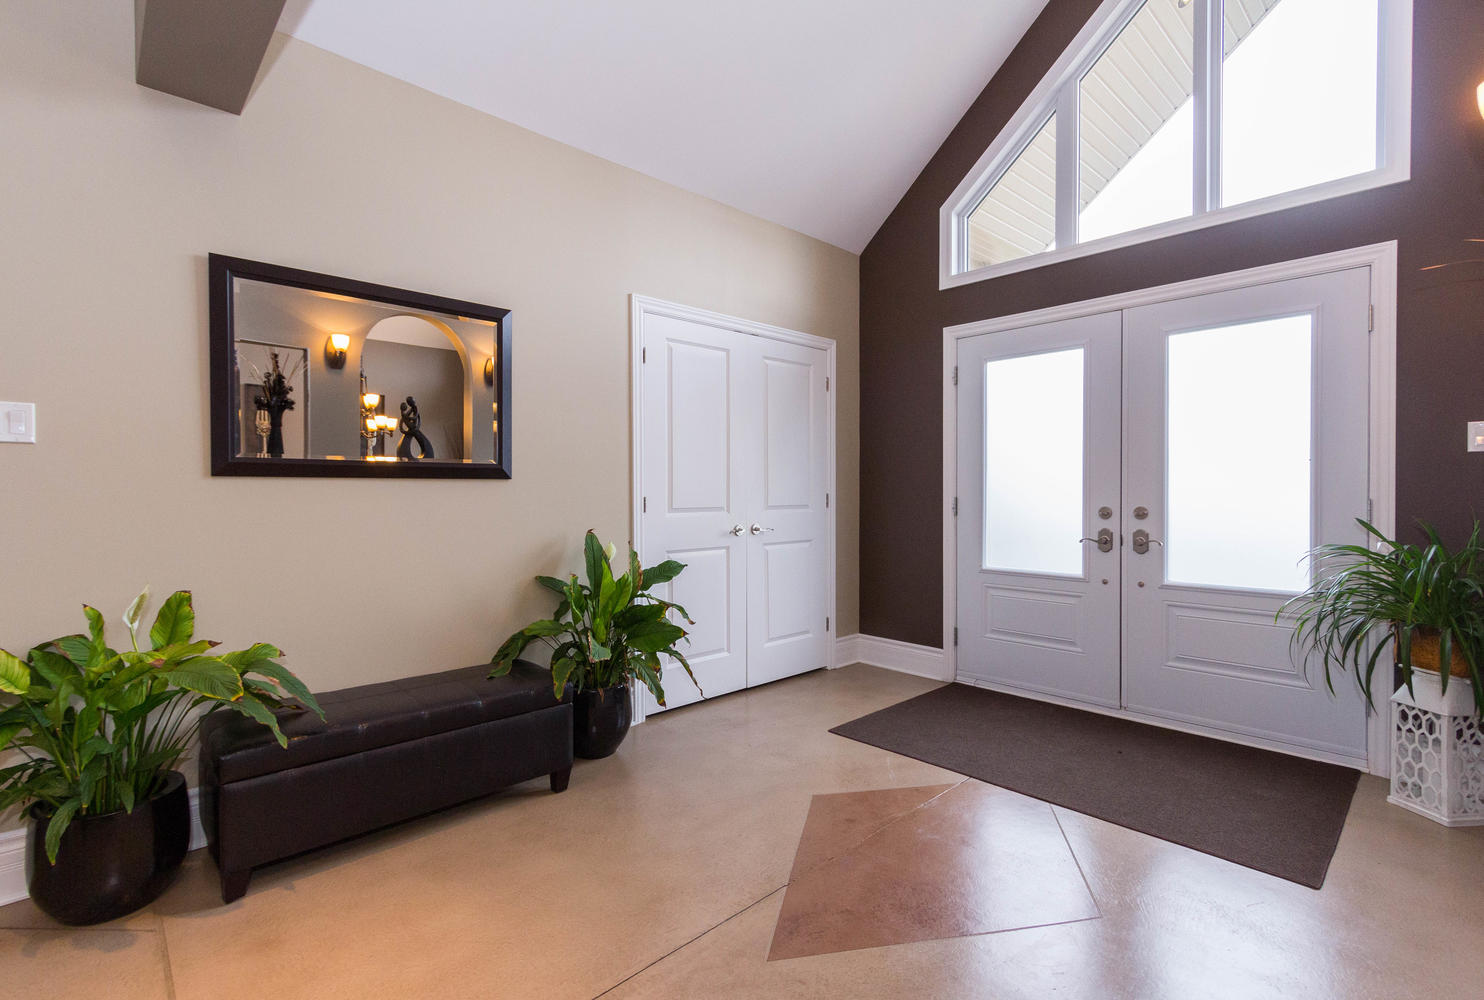 Very spacious entry with ample closet space.